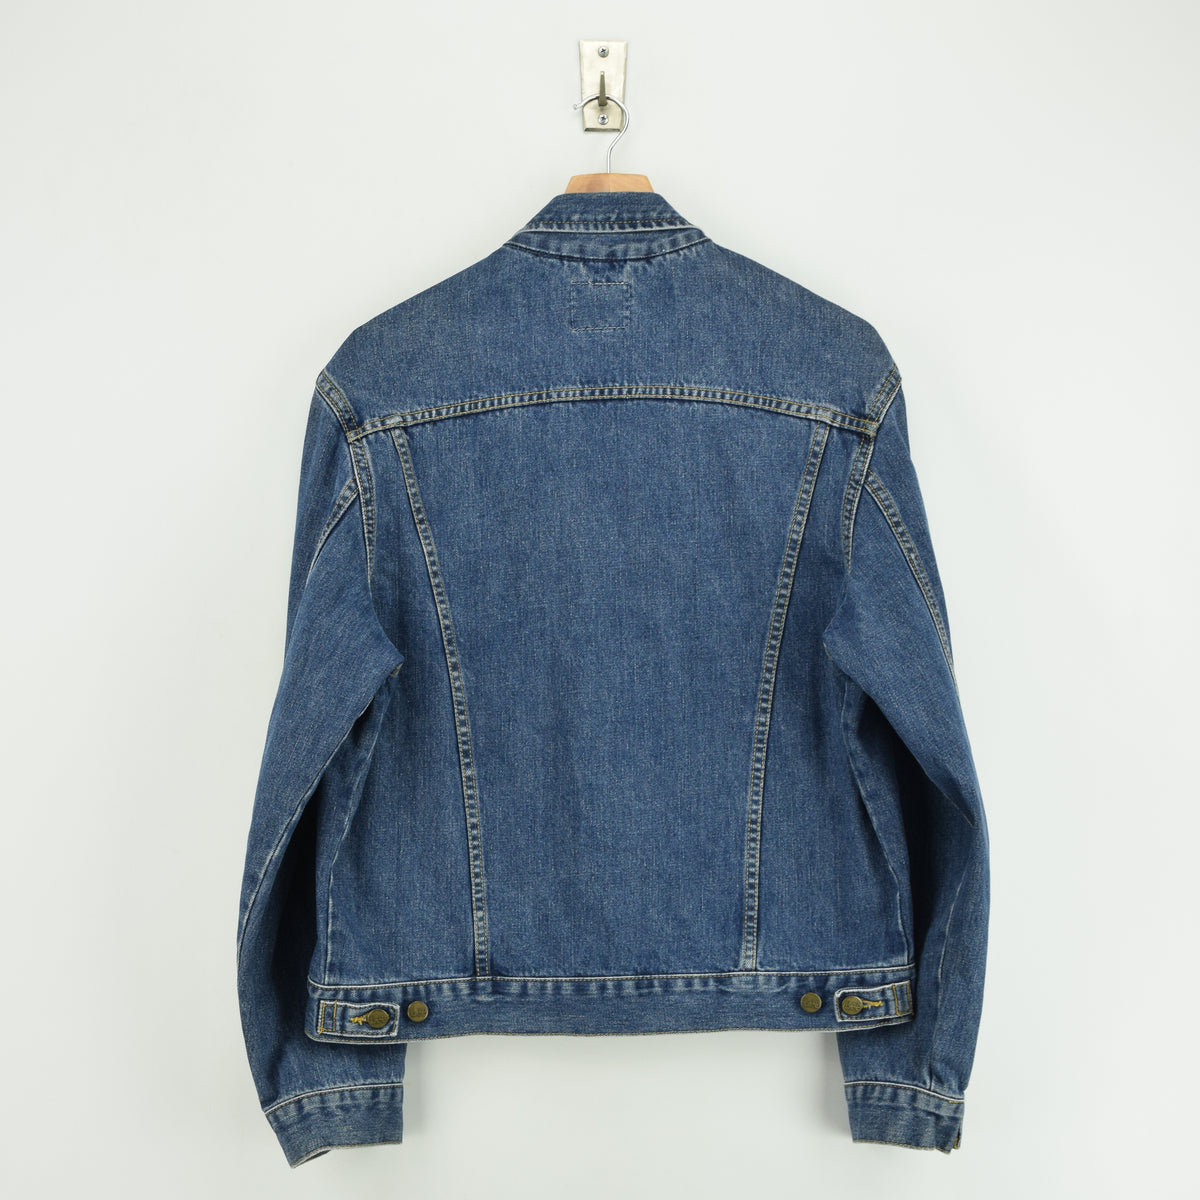 Vintage Lee Washed Blue Denim Trucker Style Basic Jacket L back